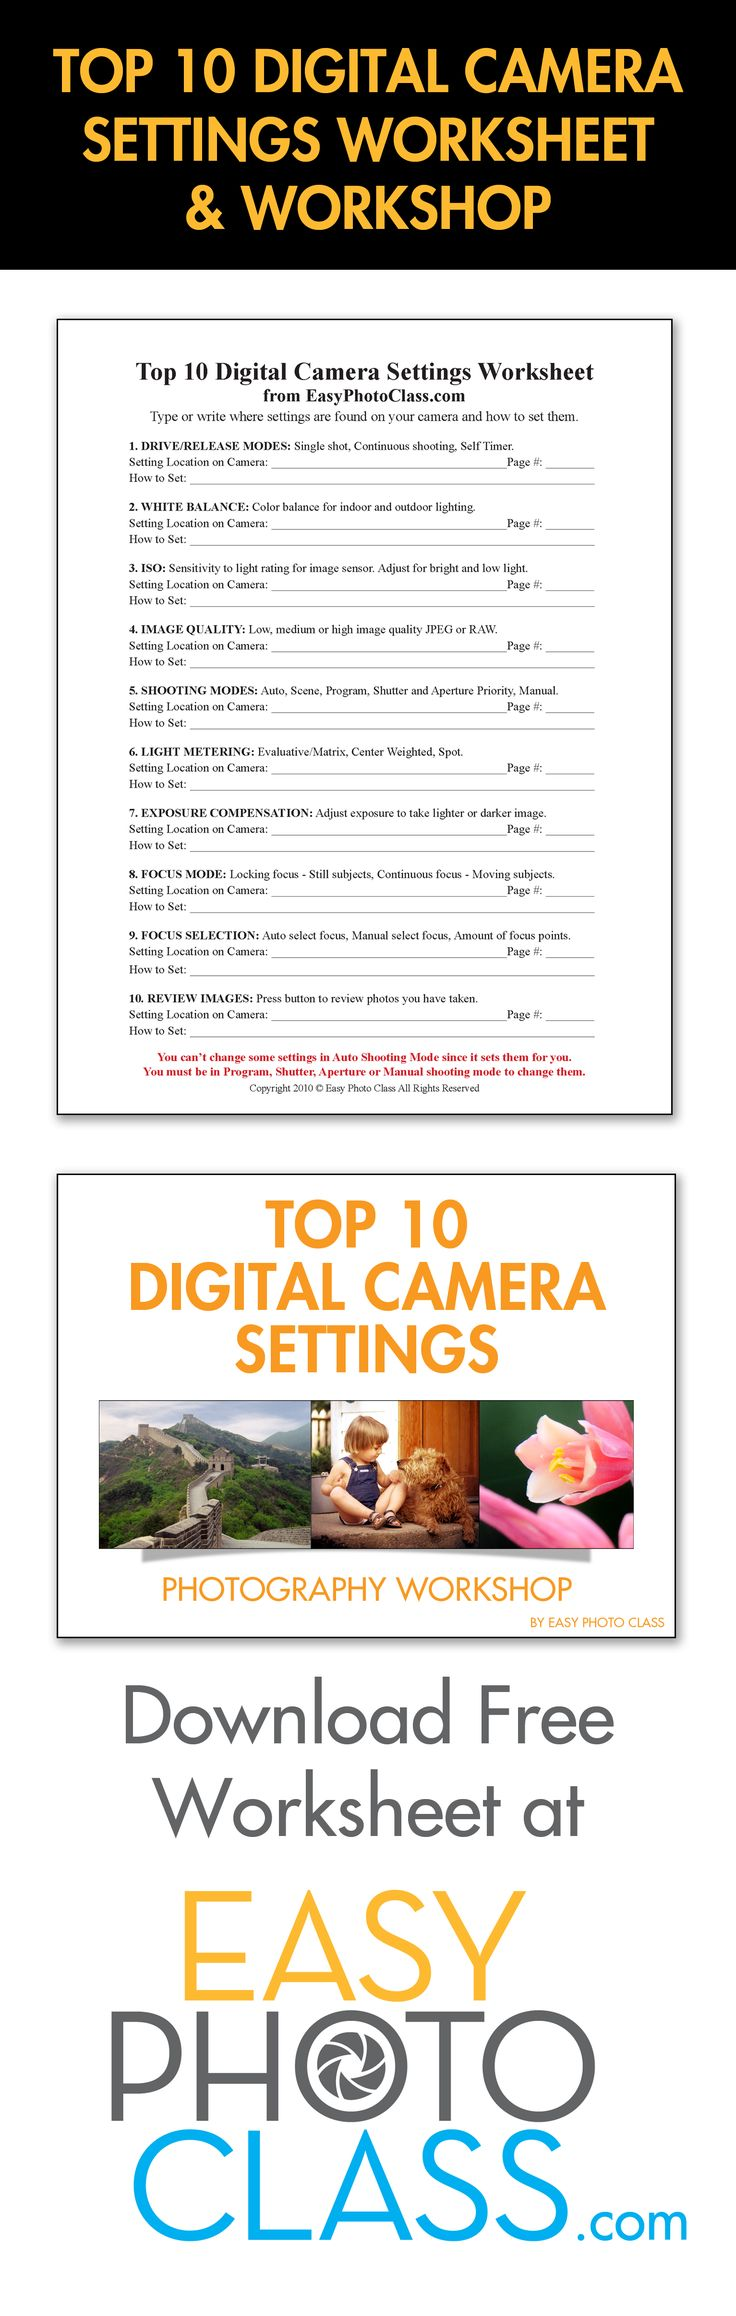 Free worksheet to help you learn the Top 10 settings on your digital camera. Workshop is free if you compliment, encourage or say Thank you to 10 people before October 31, 2017. Worksheet is a pdf with a second page that has instructions on how to reset your digital camera to the way it came from the factory. This gives you freedom to explore your camera settings and forgiveness if you mess them up. For more info check out our video at https://youtu.be/bZlNqI4Qpog